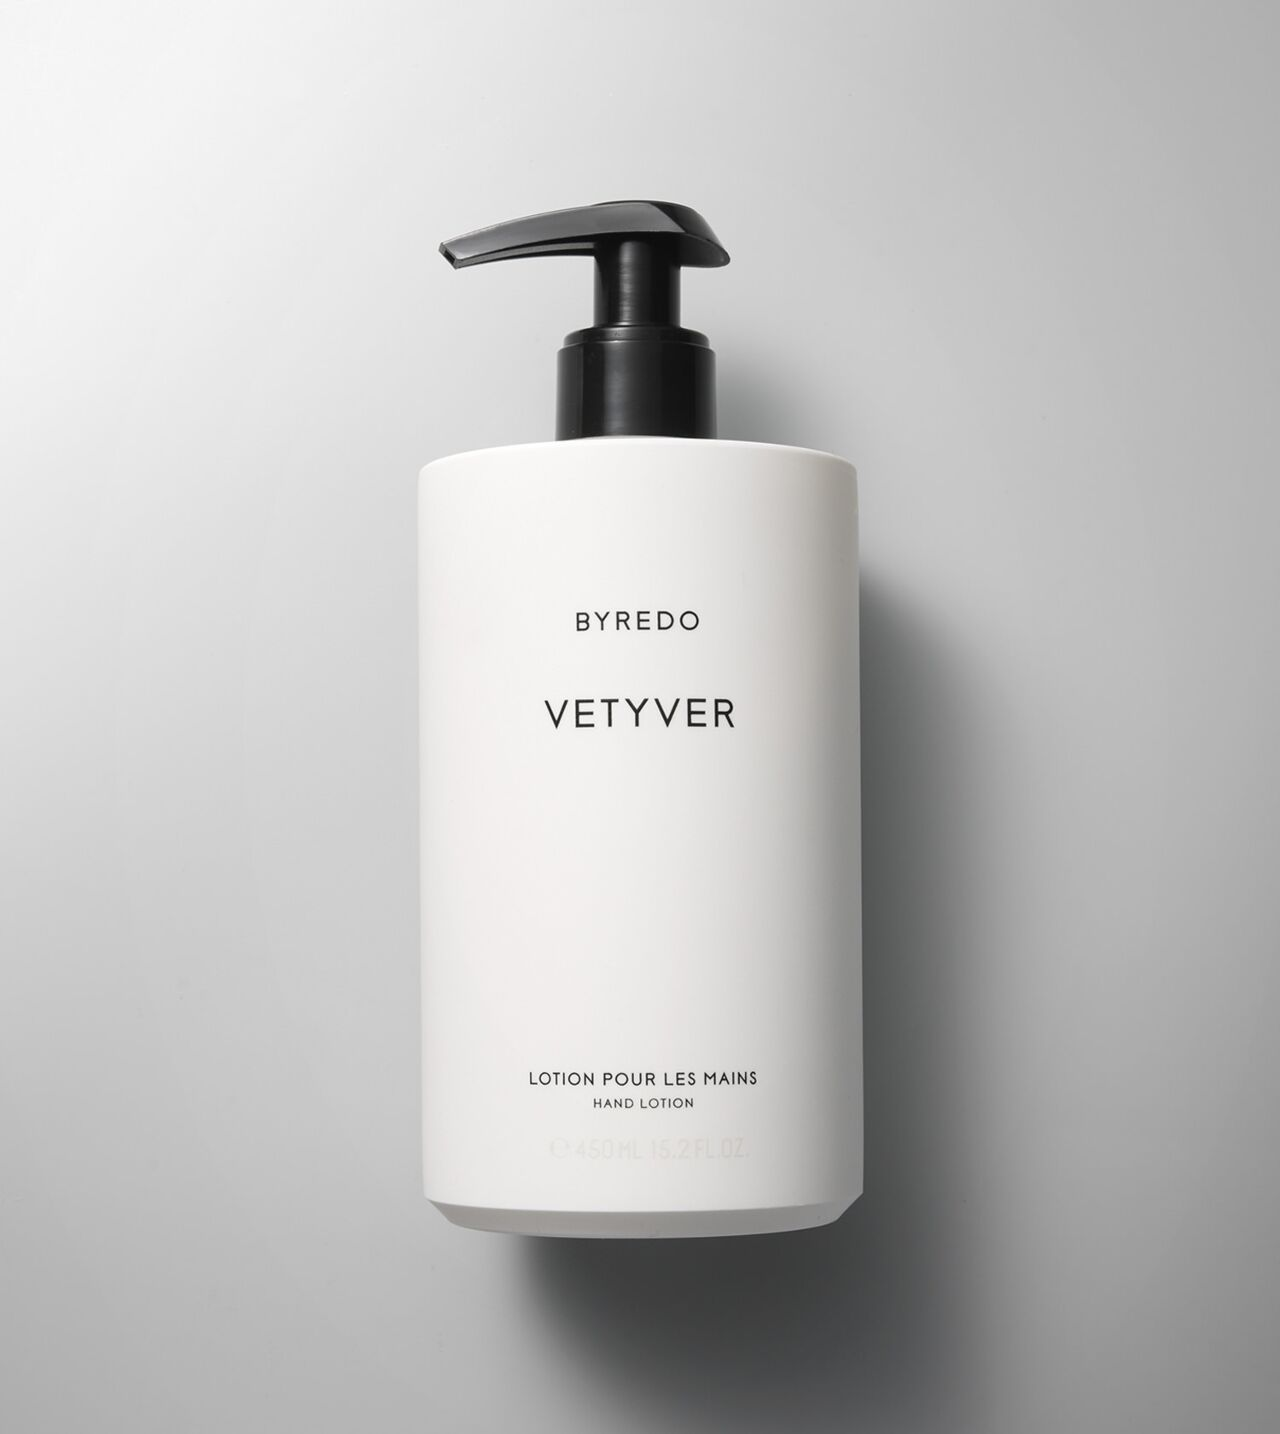 Picture of Byredo Vetyver Hand lotion 450ml